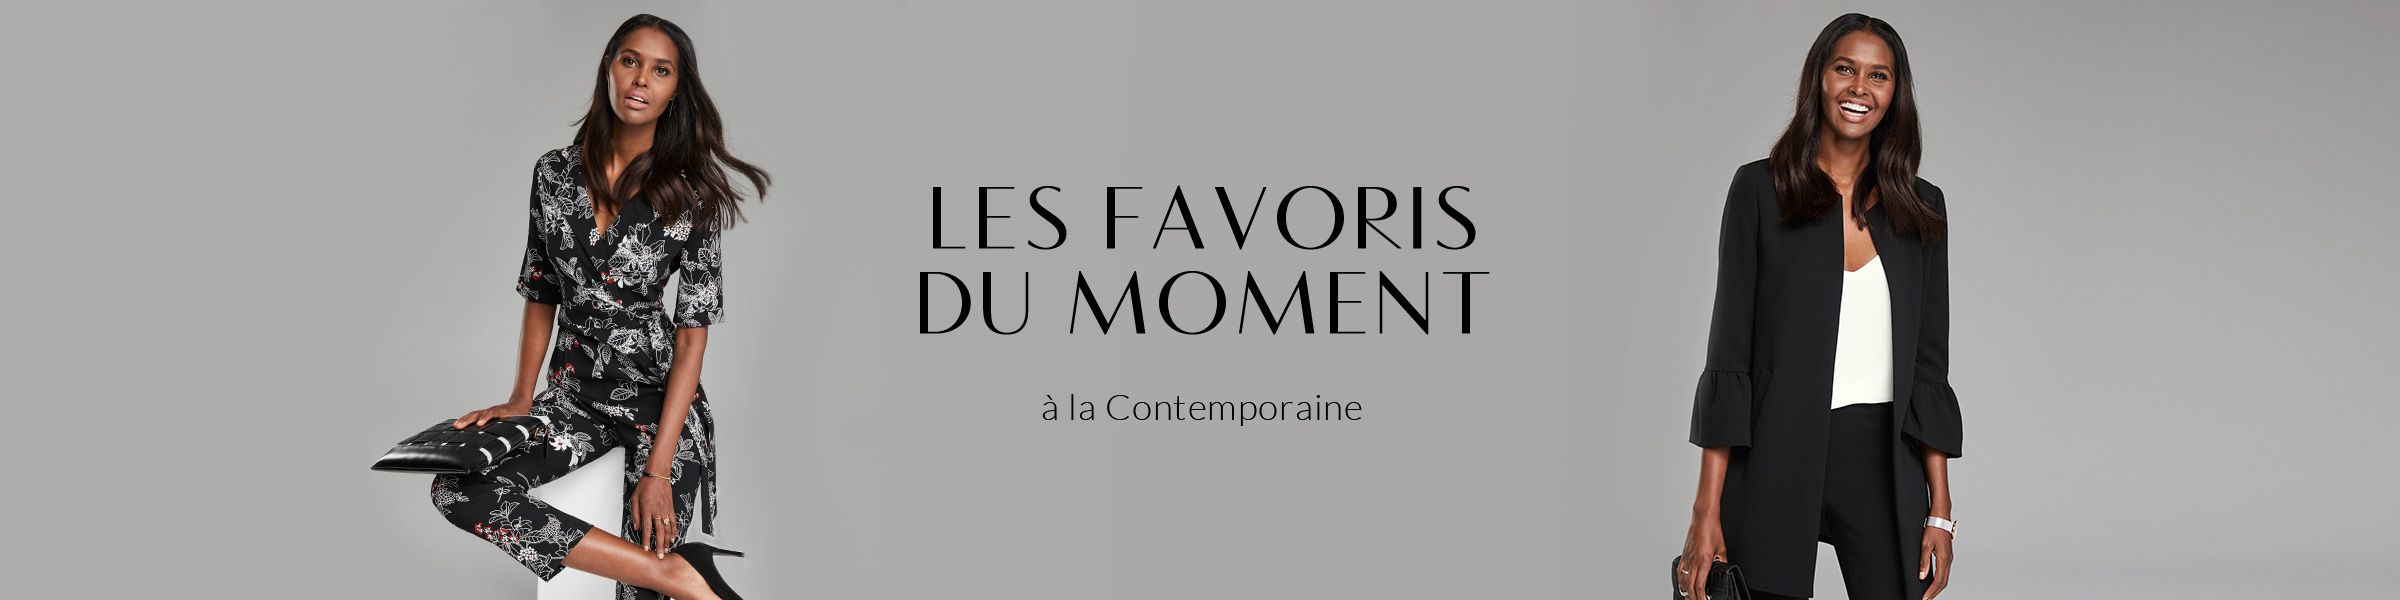 A17-TB-CONTEMPORAINE_LES FAVORIS DU MOMENT-03.psd